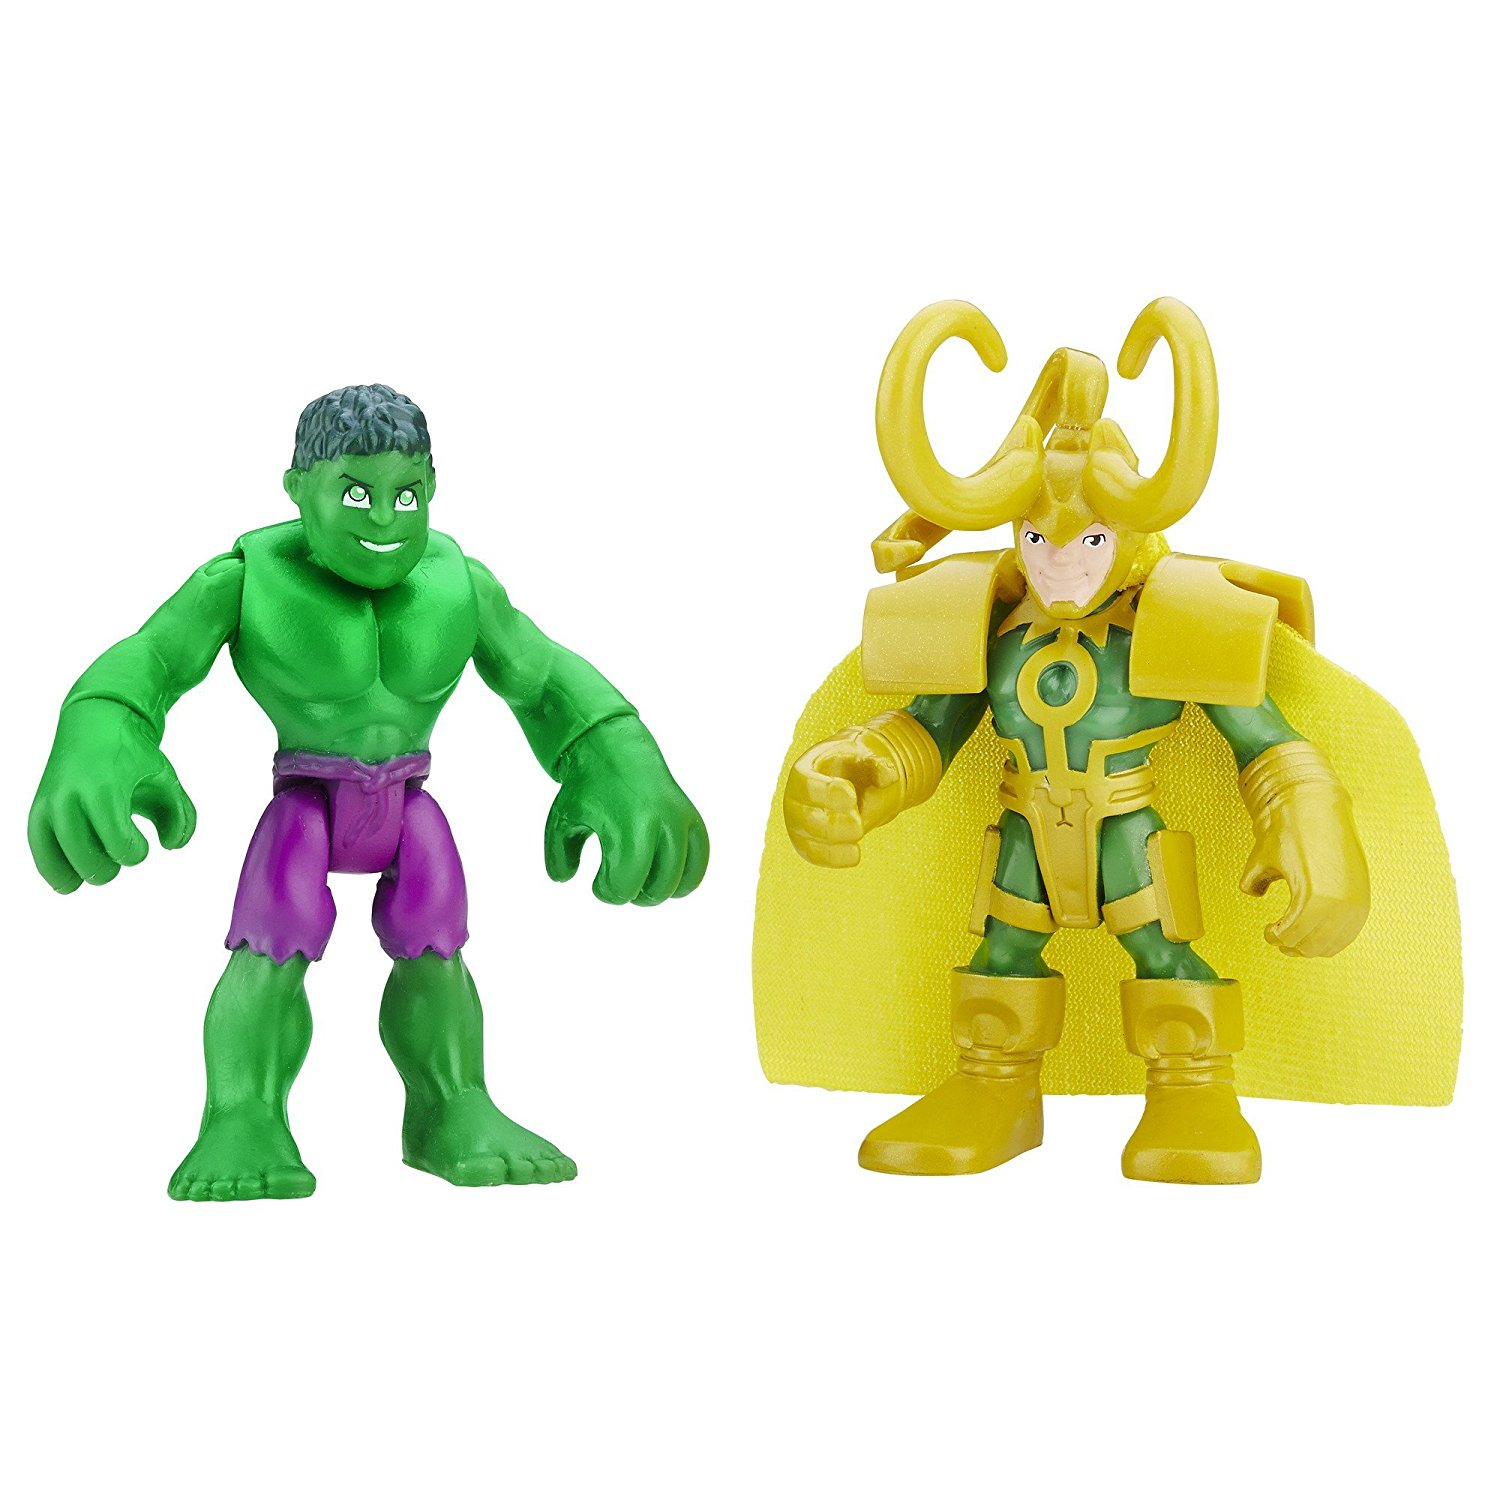 Heroes Marvel Super Hero Adventures Hulk and Loki, 2-pack includes 2 Marvel figures By... by